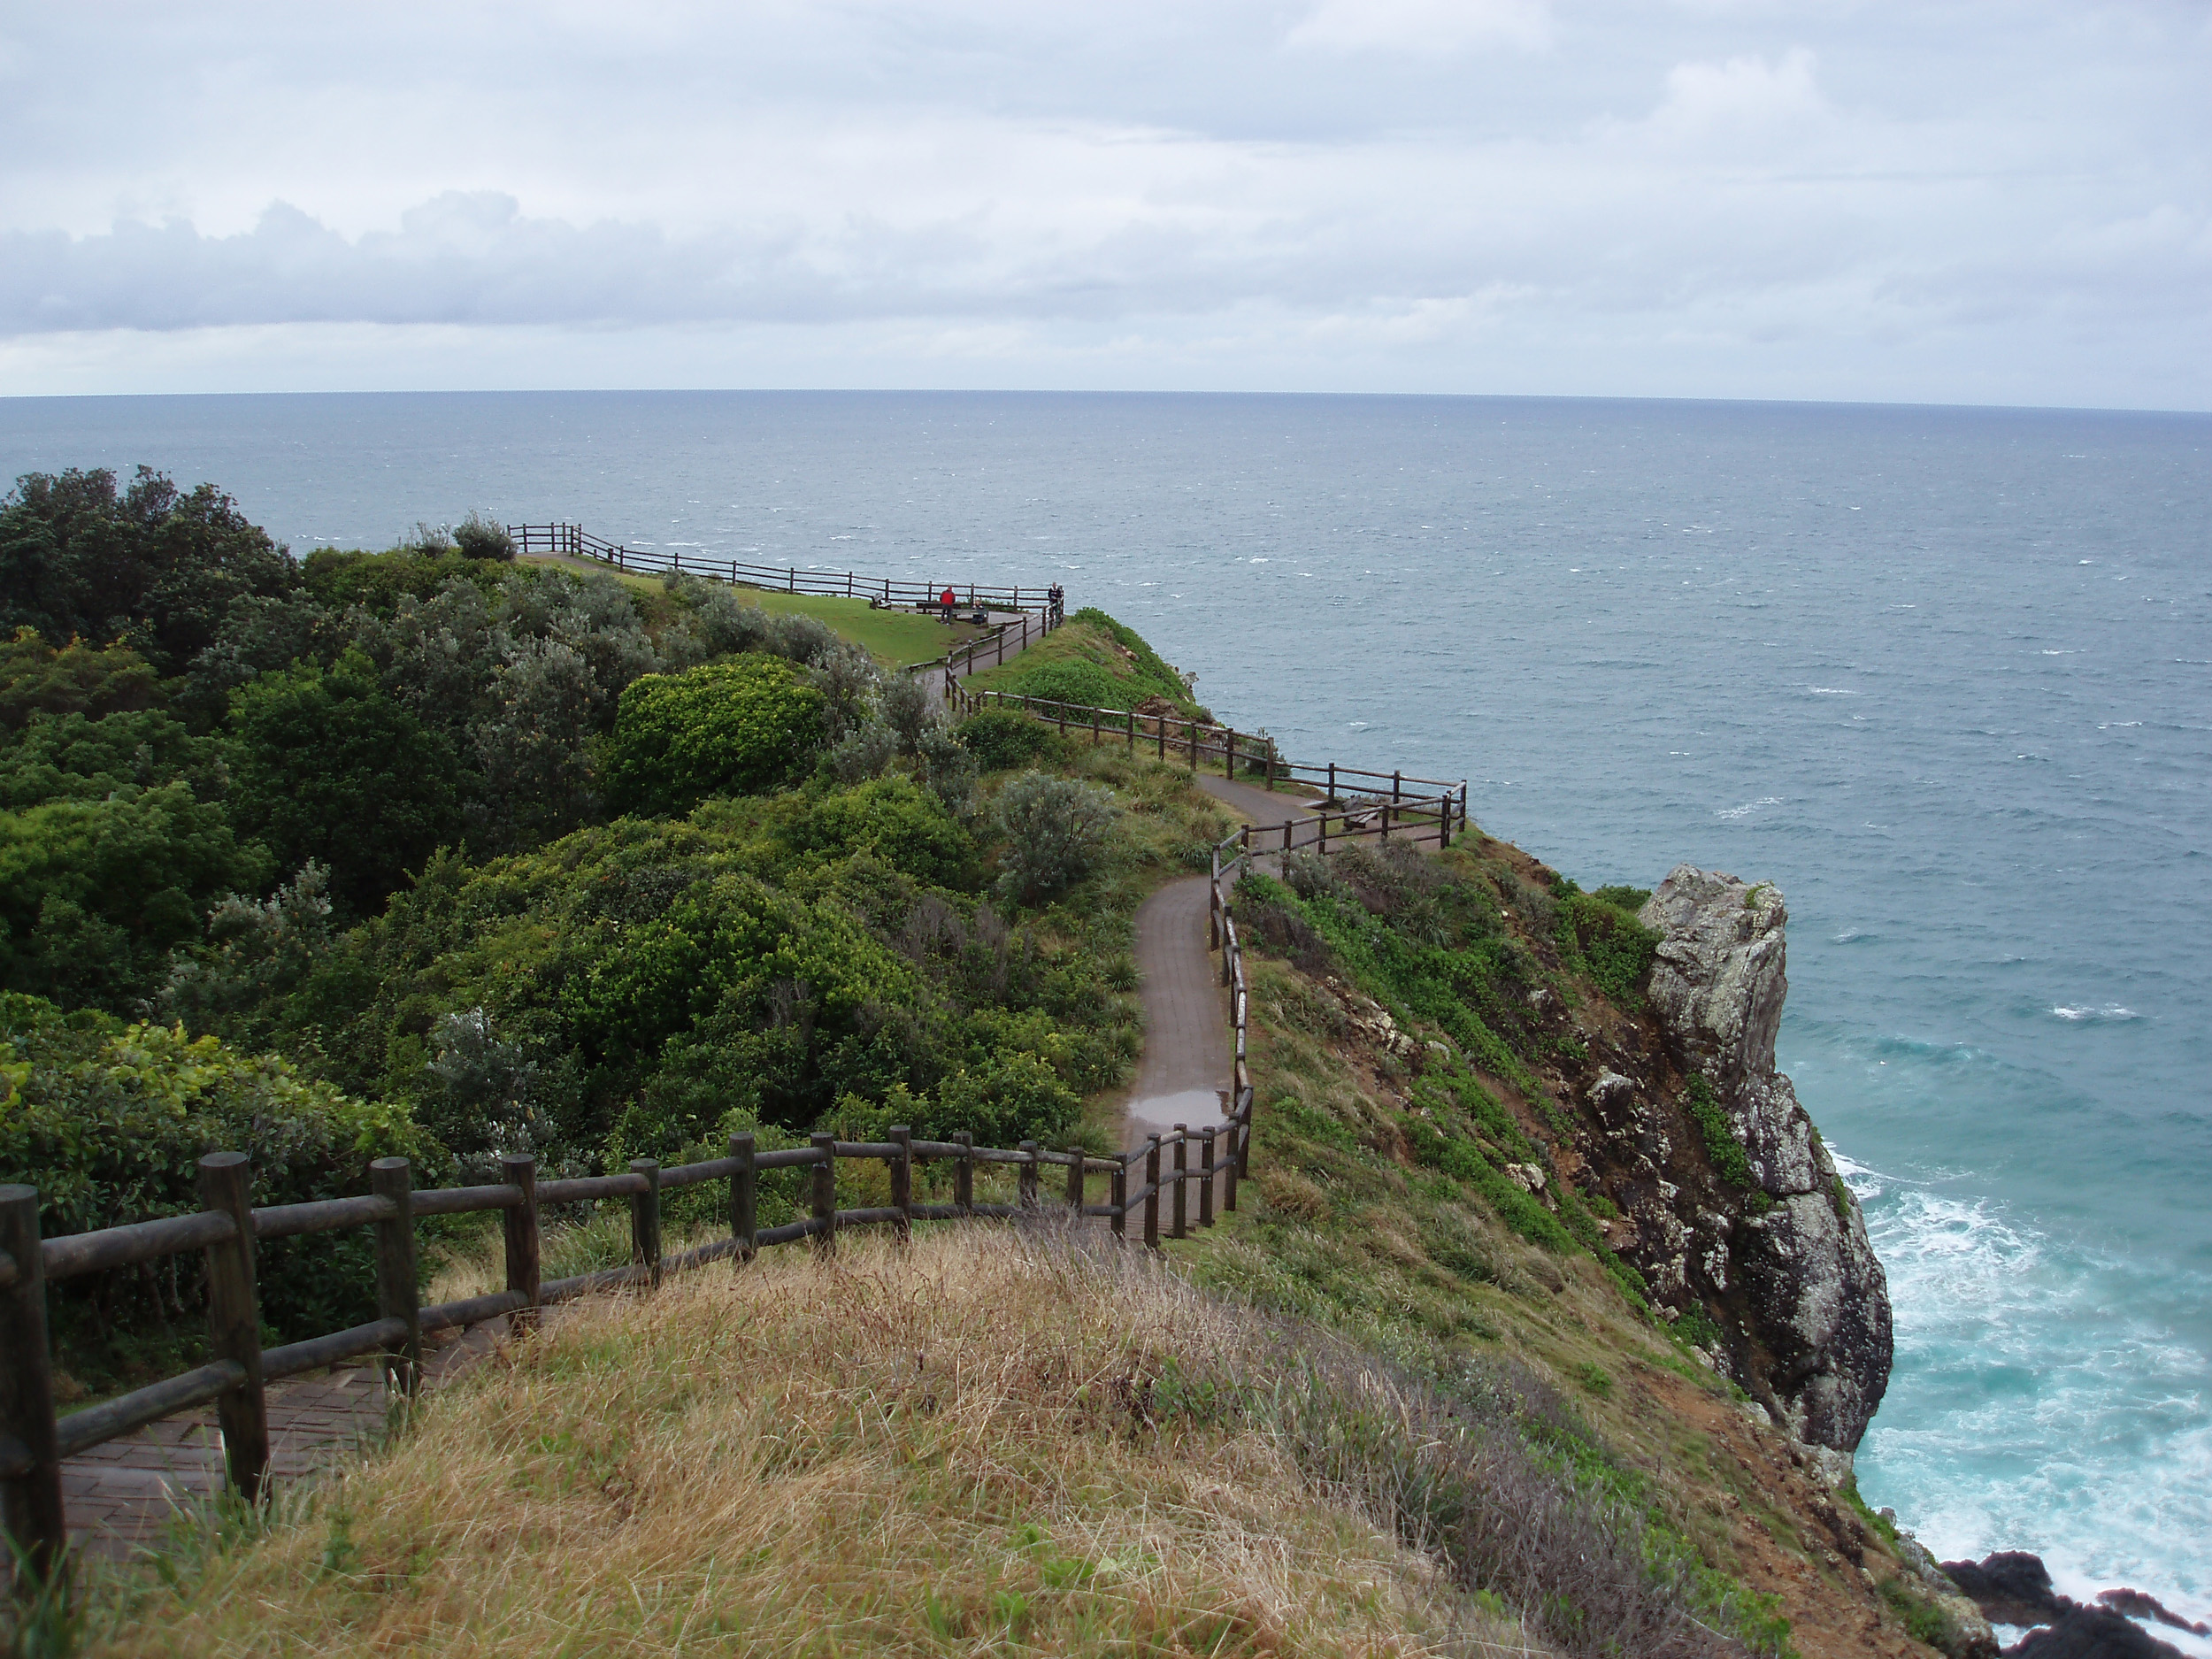 foot path down to mainland australias most easterly point at the end of cape byron